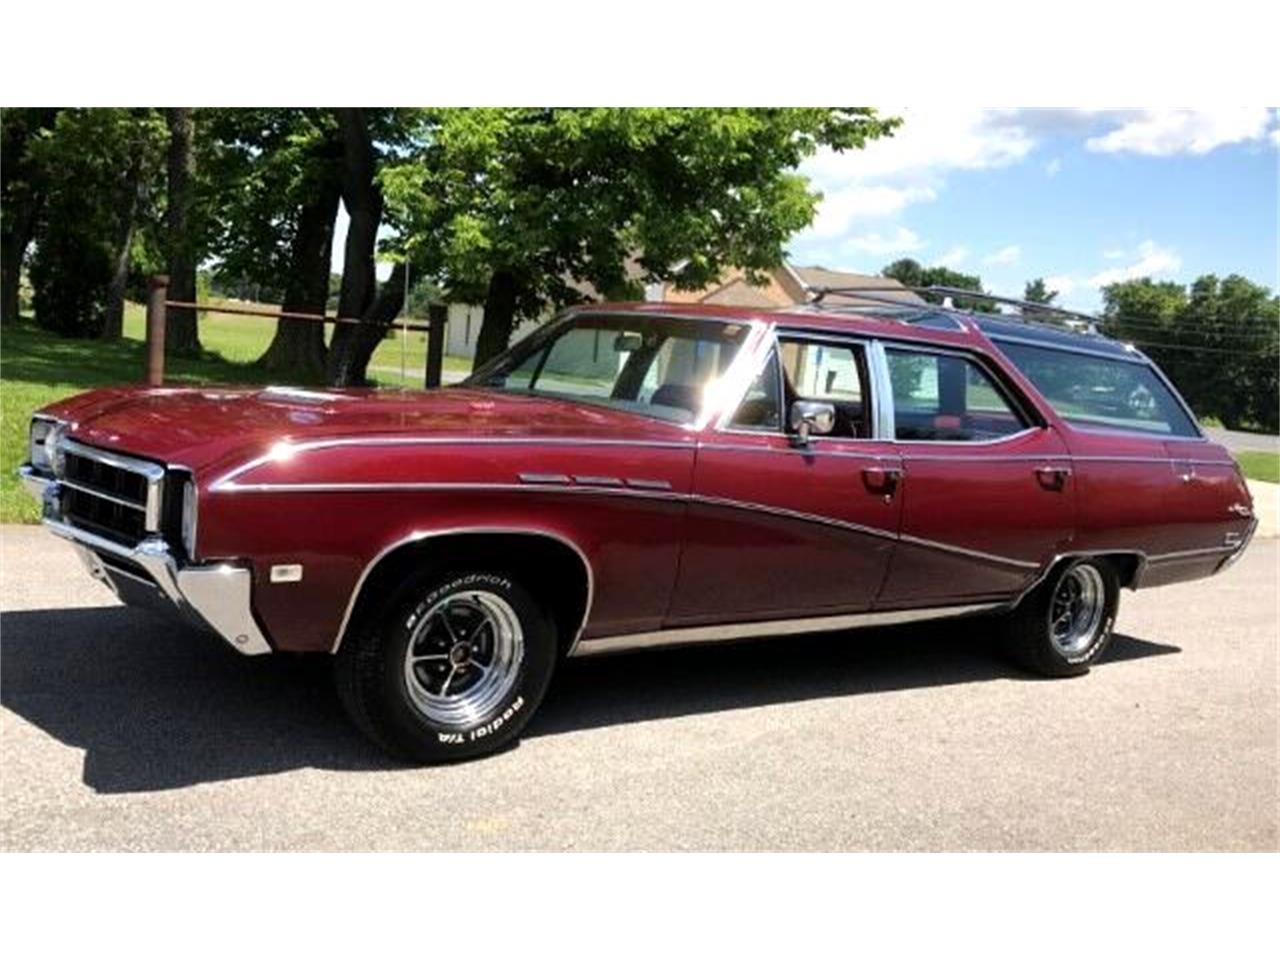 1969 Buick Sport Wagon (CC-1414625) for sale in Harpers Ferry, West Virginia